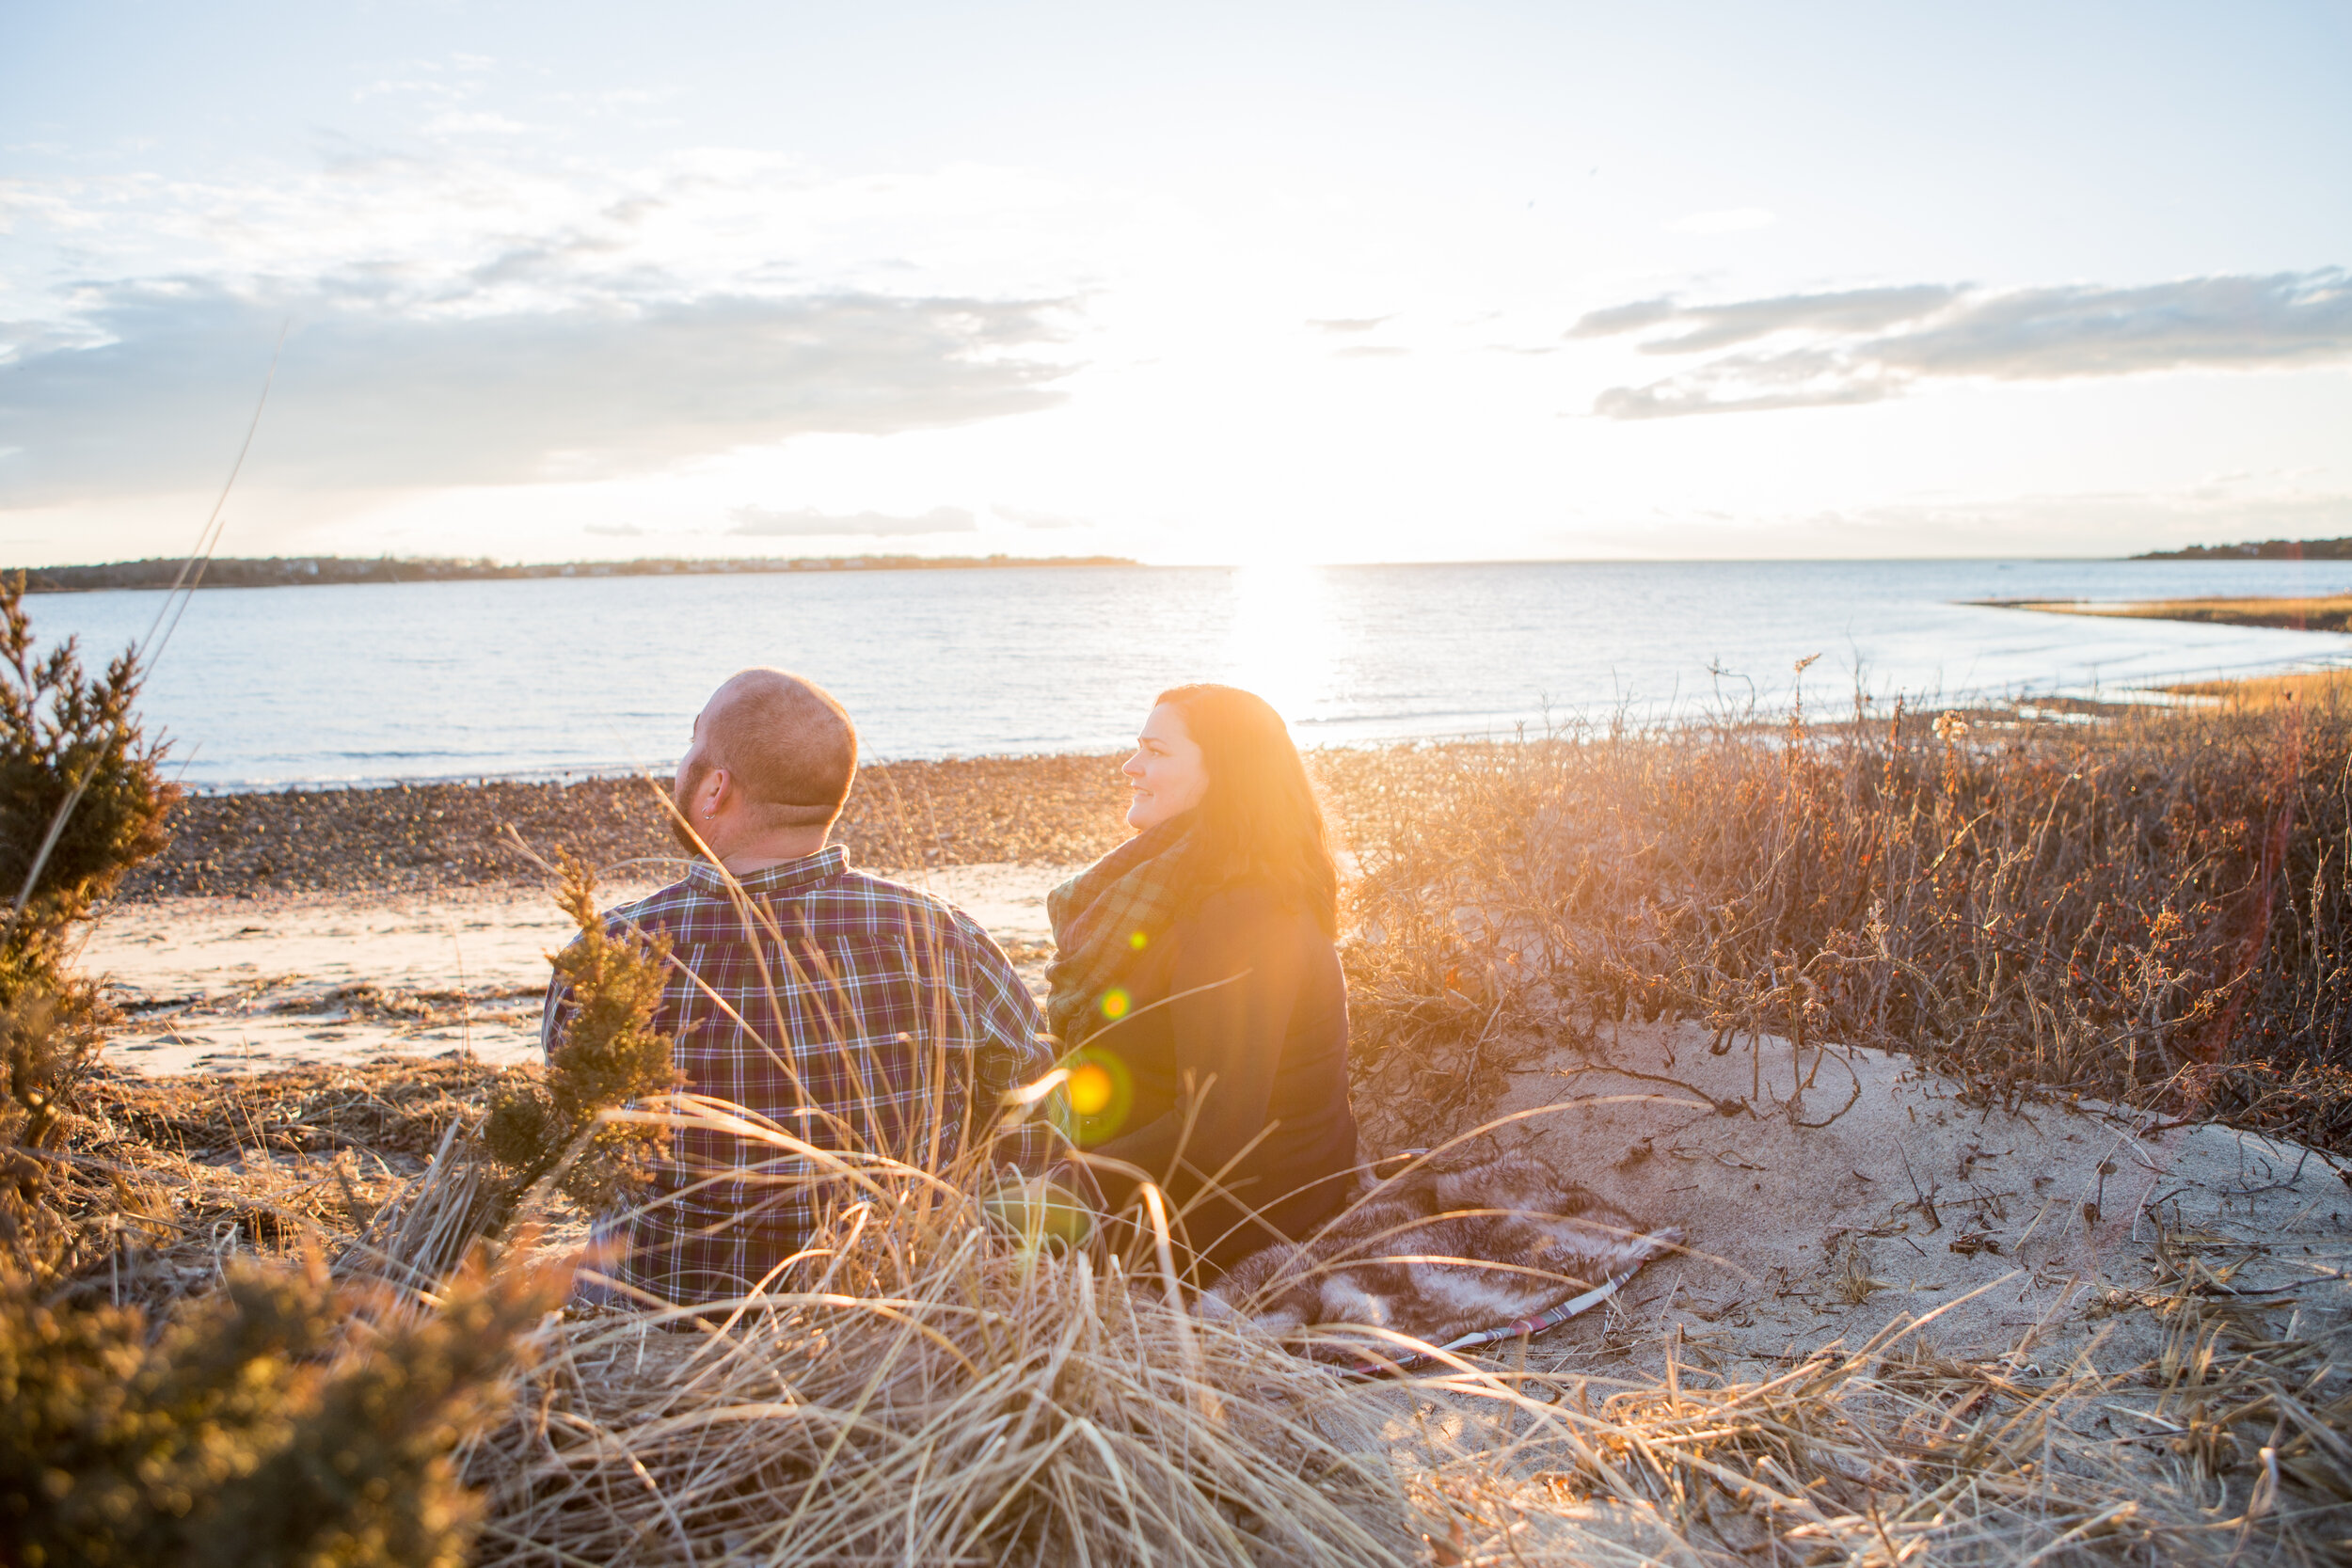 We took a minute to enjoy the sunset before heading over to the Jetty.